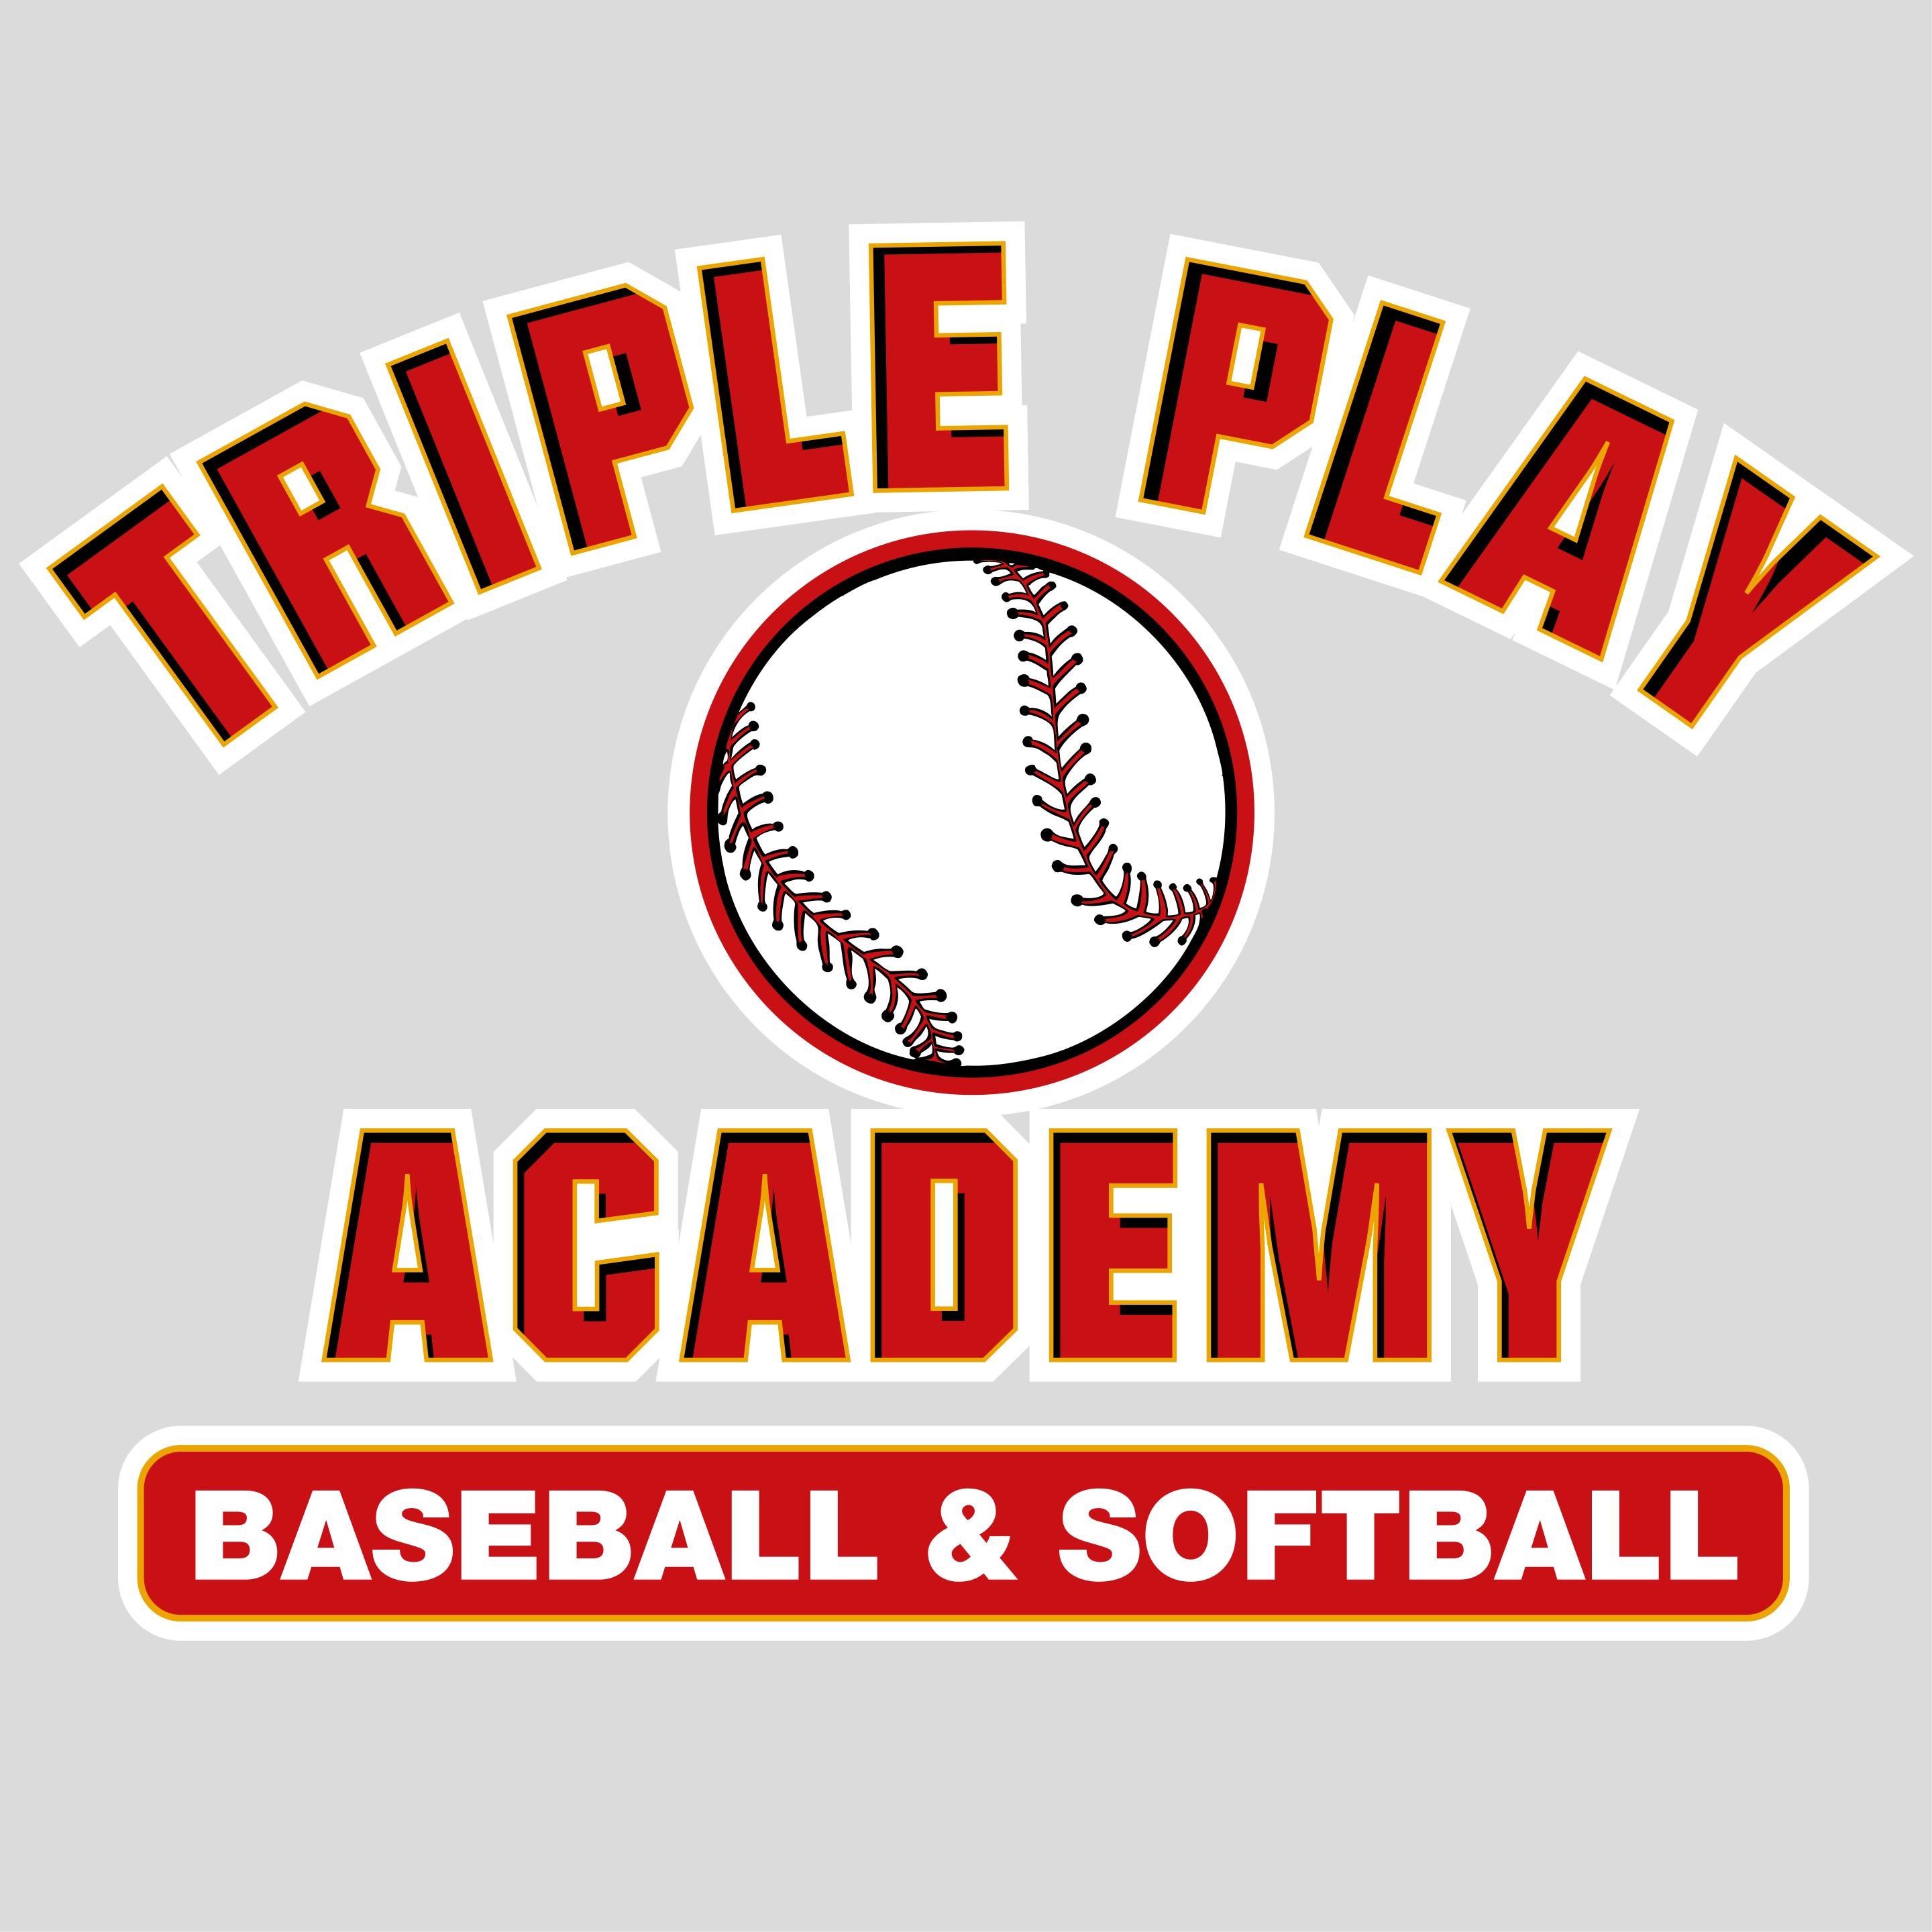 triple_play_logo.jpg